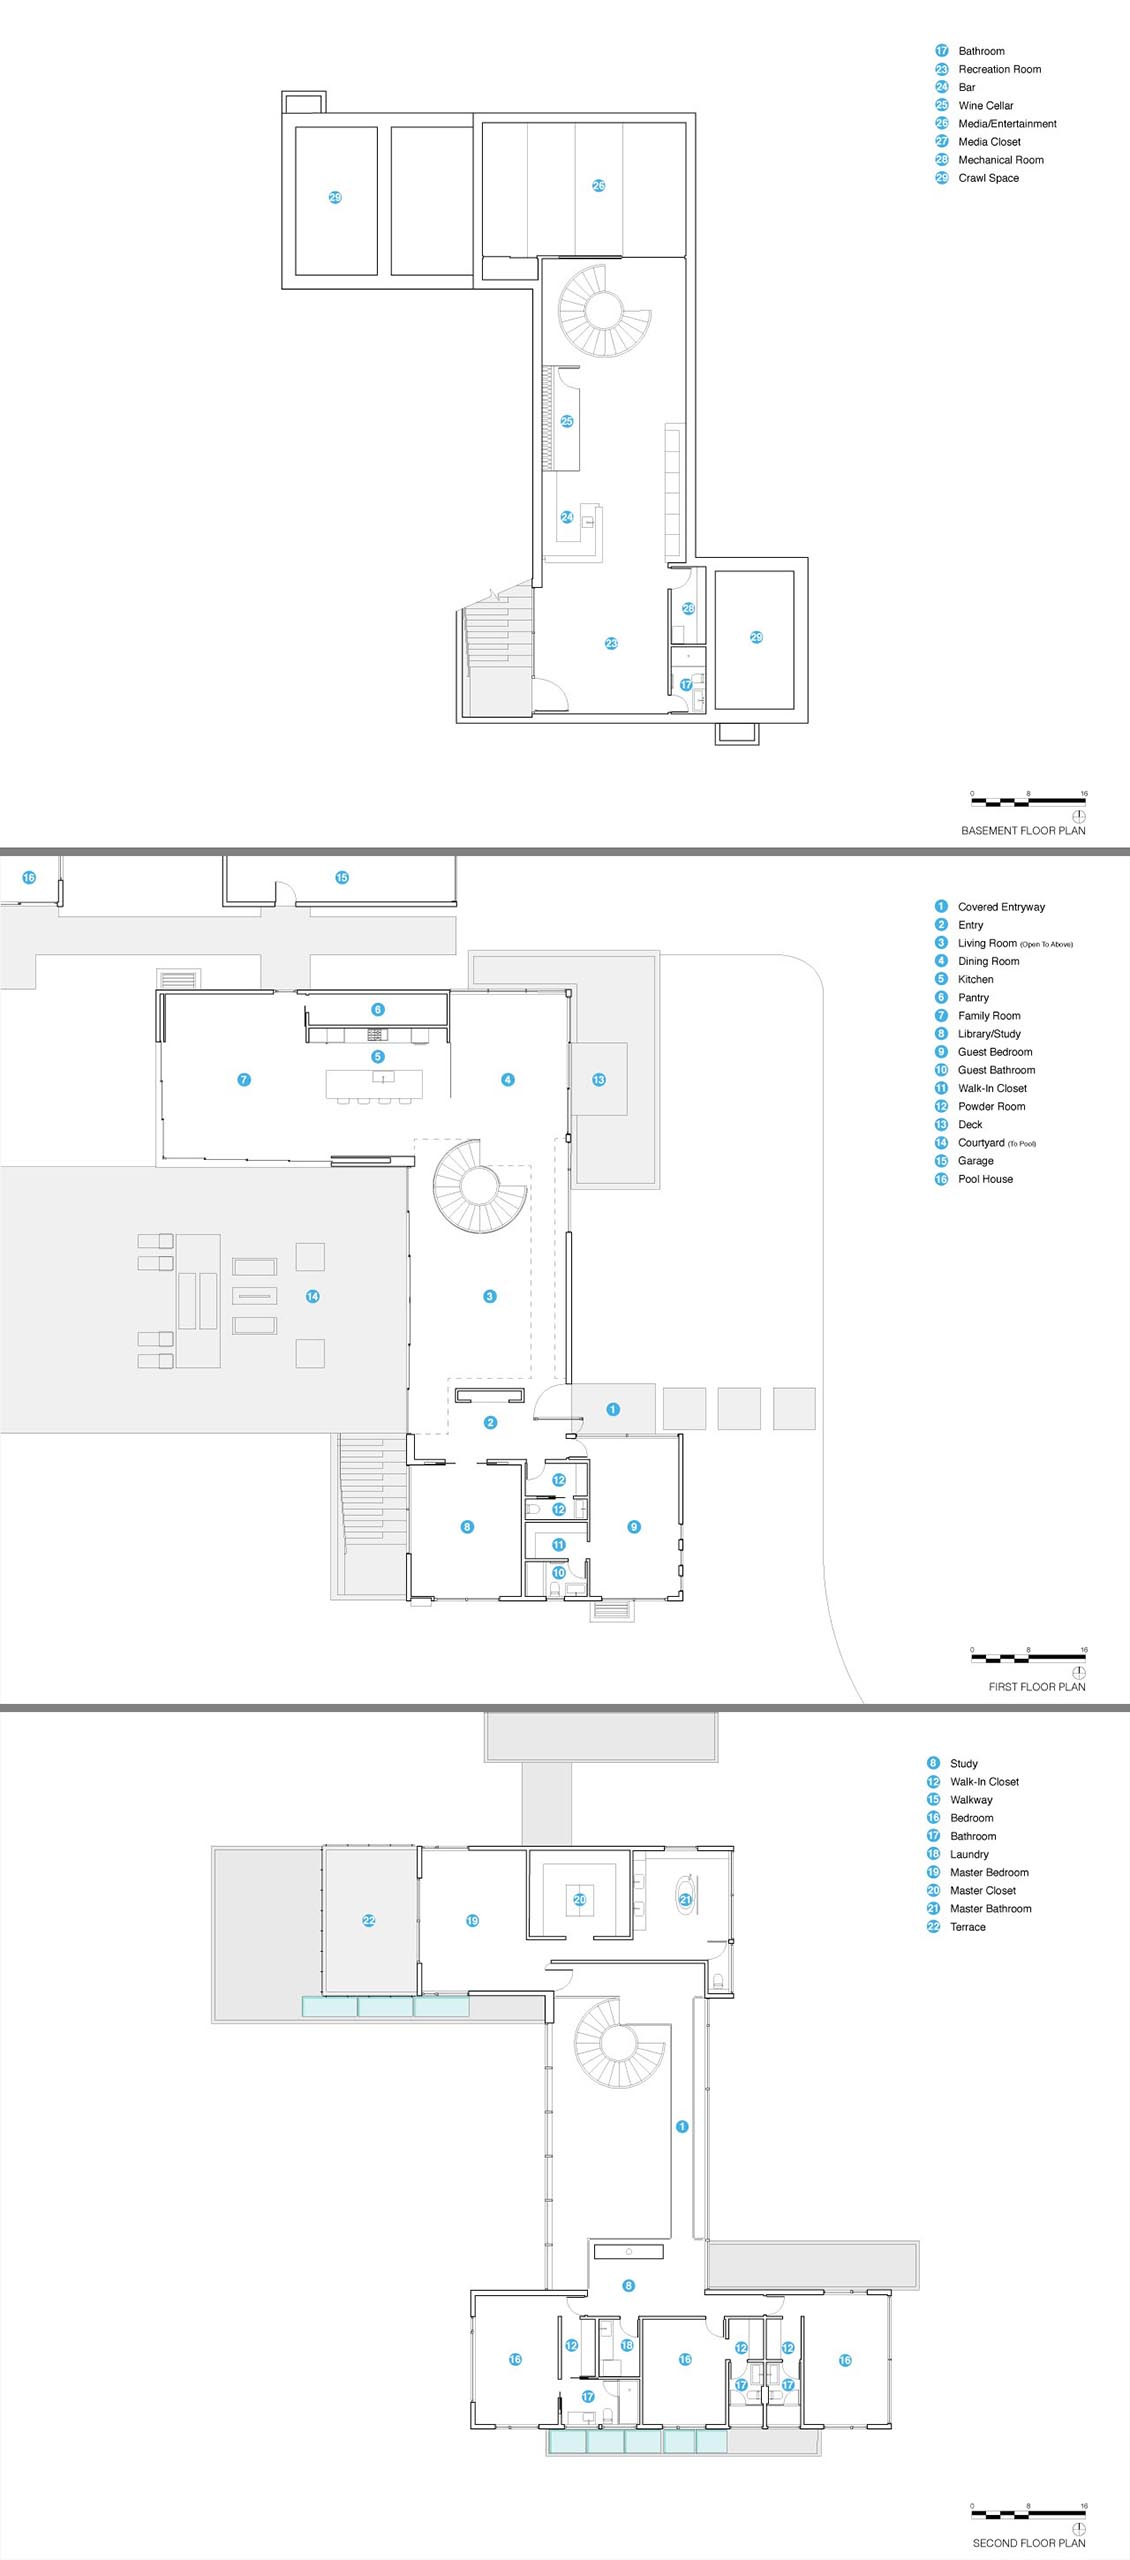 The floor plan of a modern three story house.